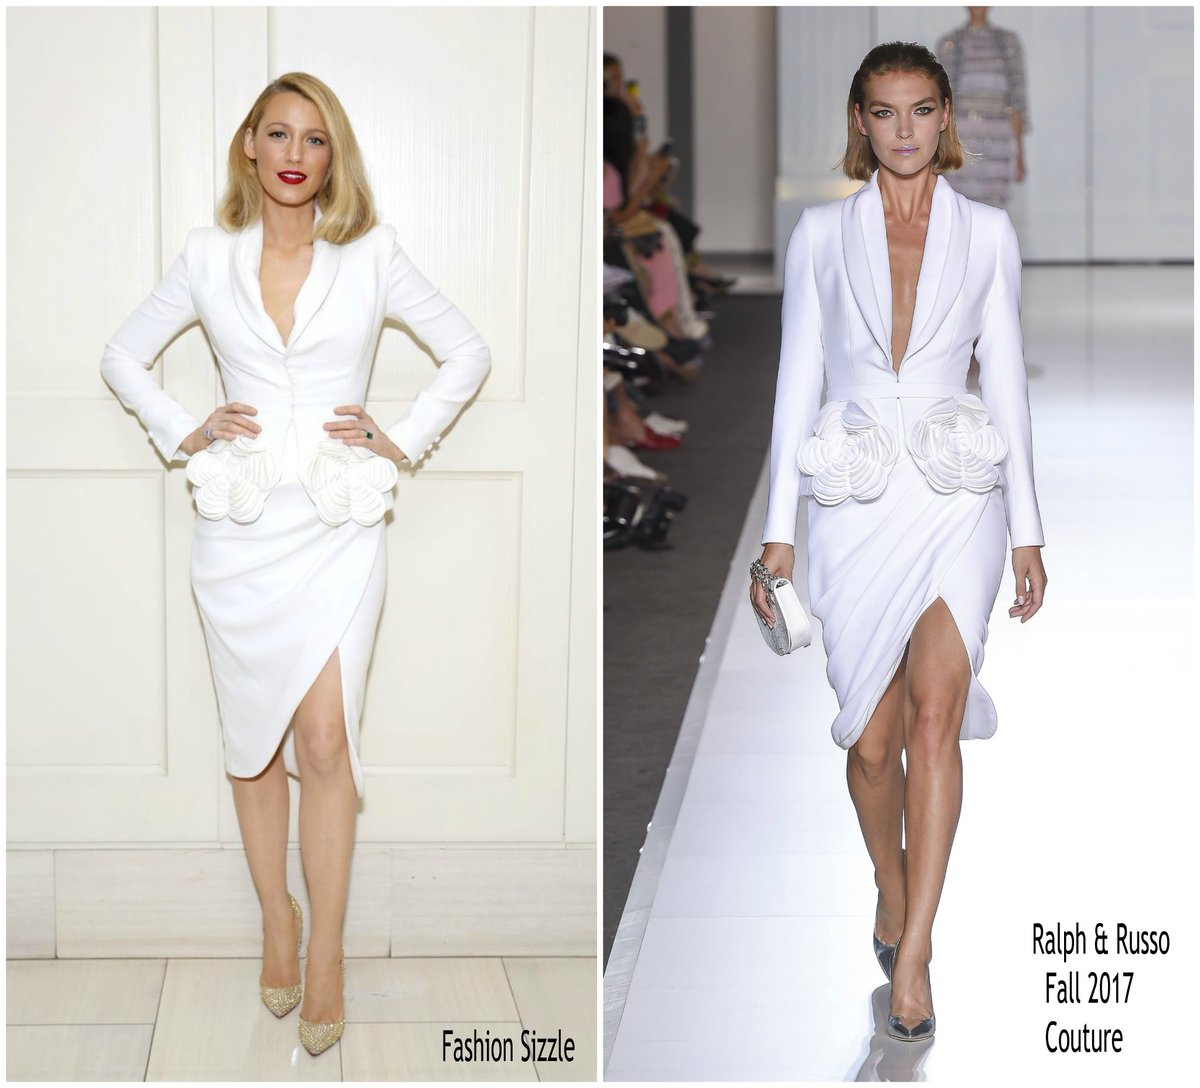 blake-lively-in-ralph-russo-couture-all-i-see-is-you-movie-la-screening